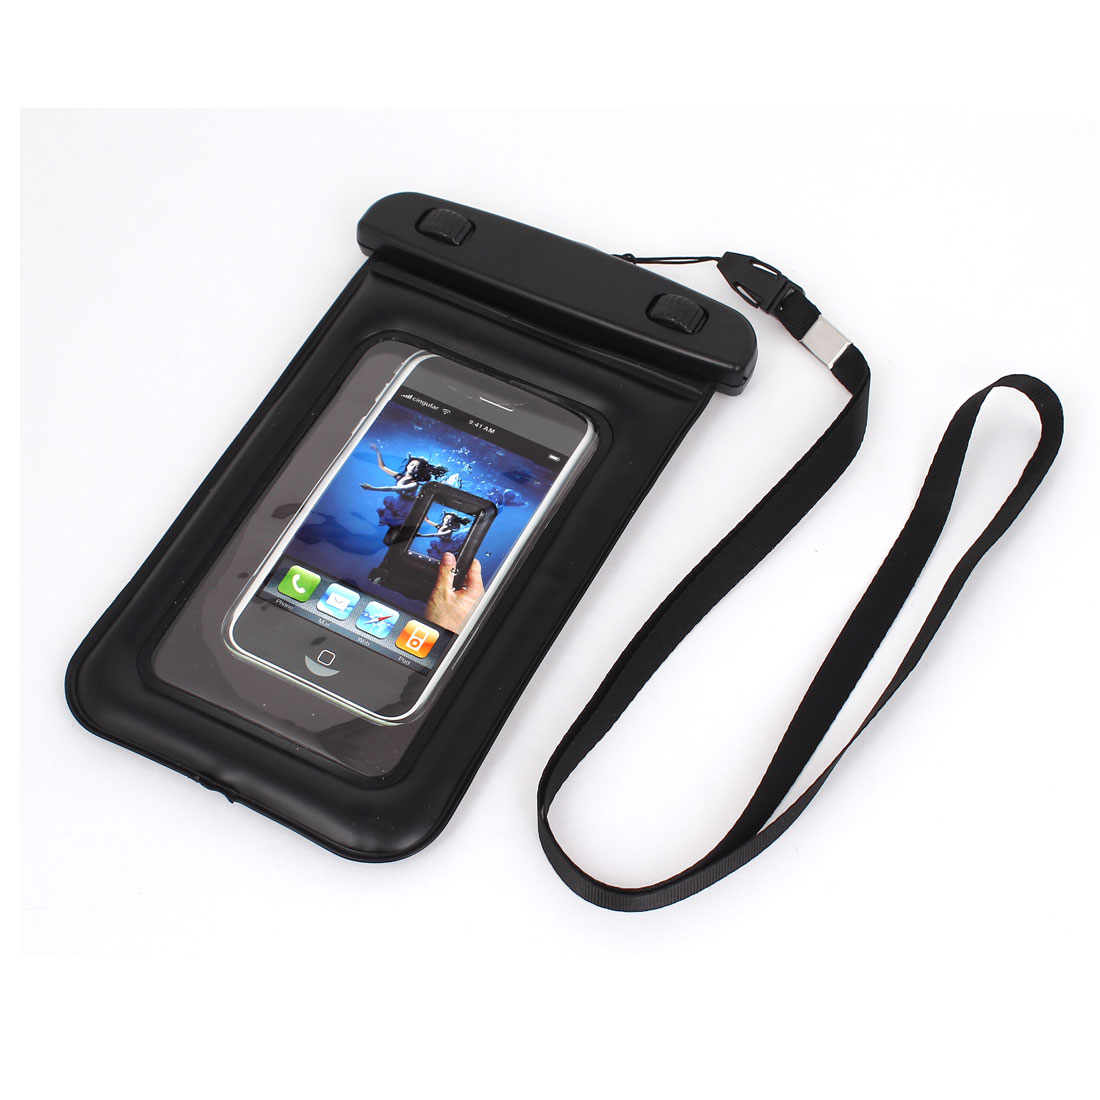 "Waterproof Swimming Beach Bag Case for 4.5"" Cell Phone w Neck Strap"